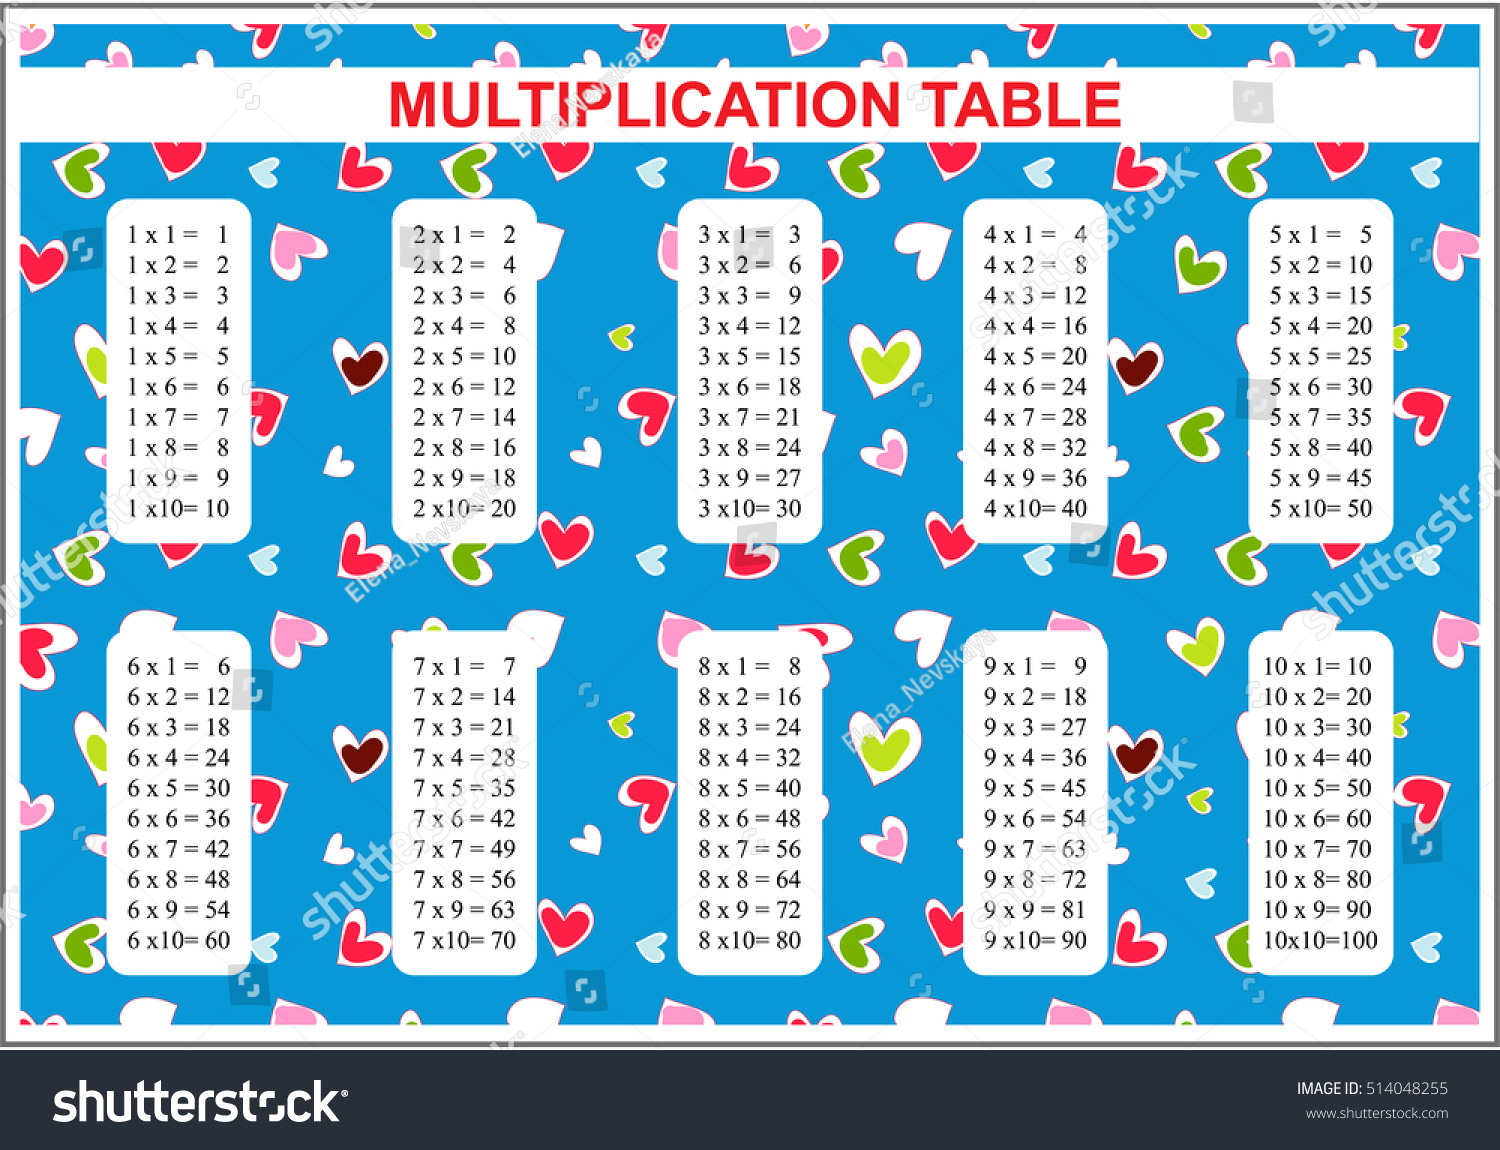 Images of study table for kids